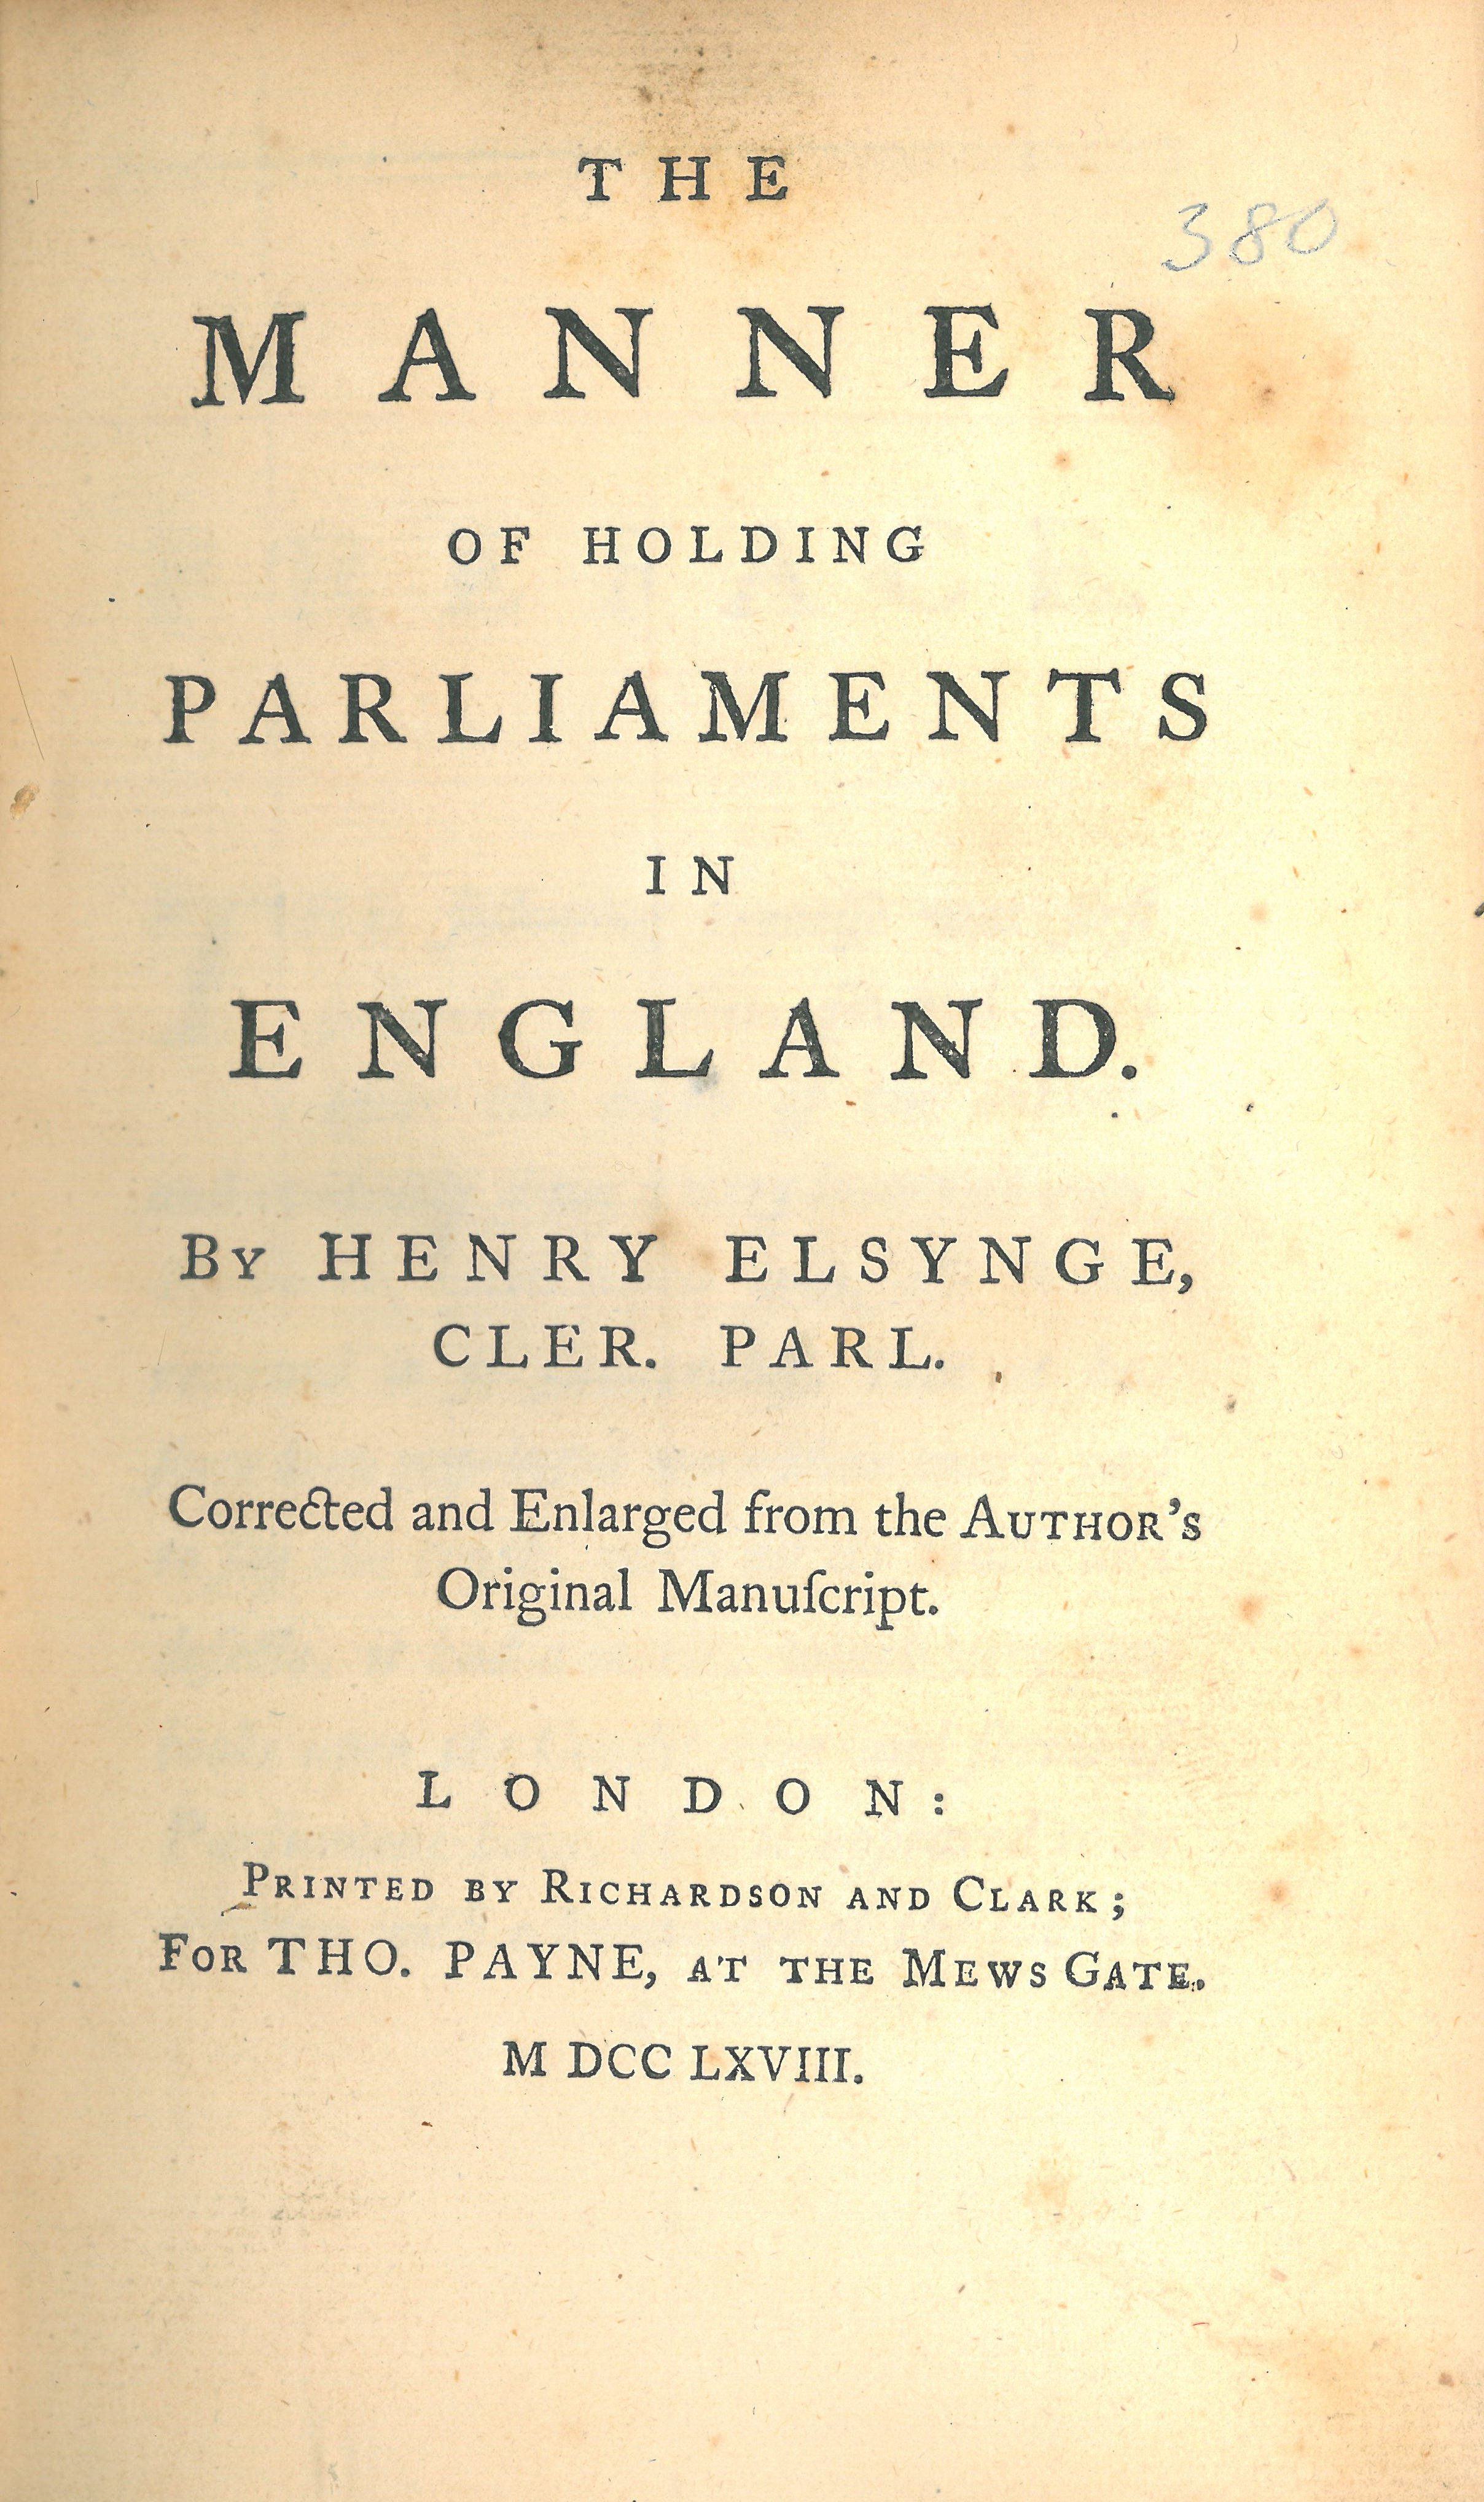 The title page of the 1768 edition of [[Henry Elsynge